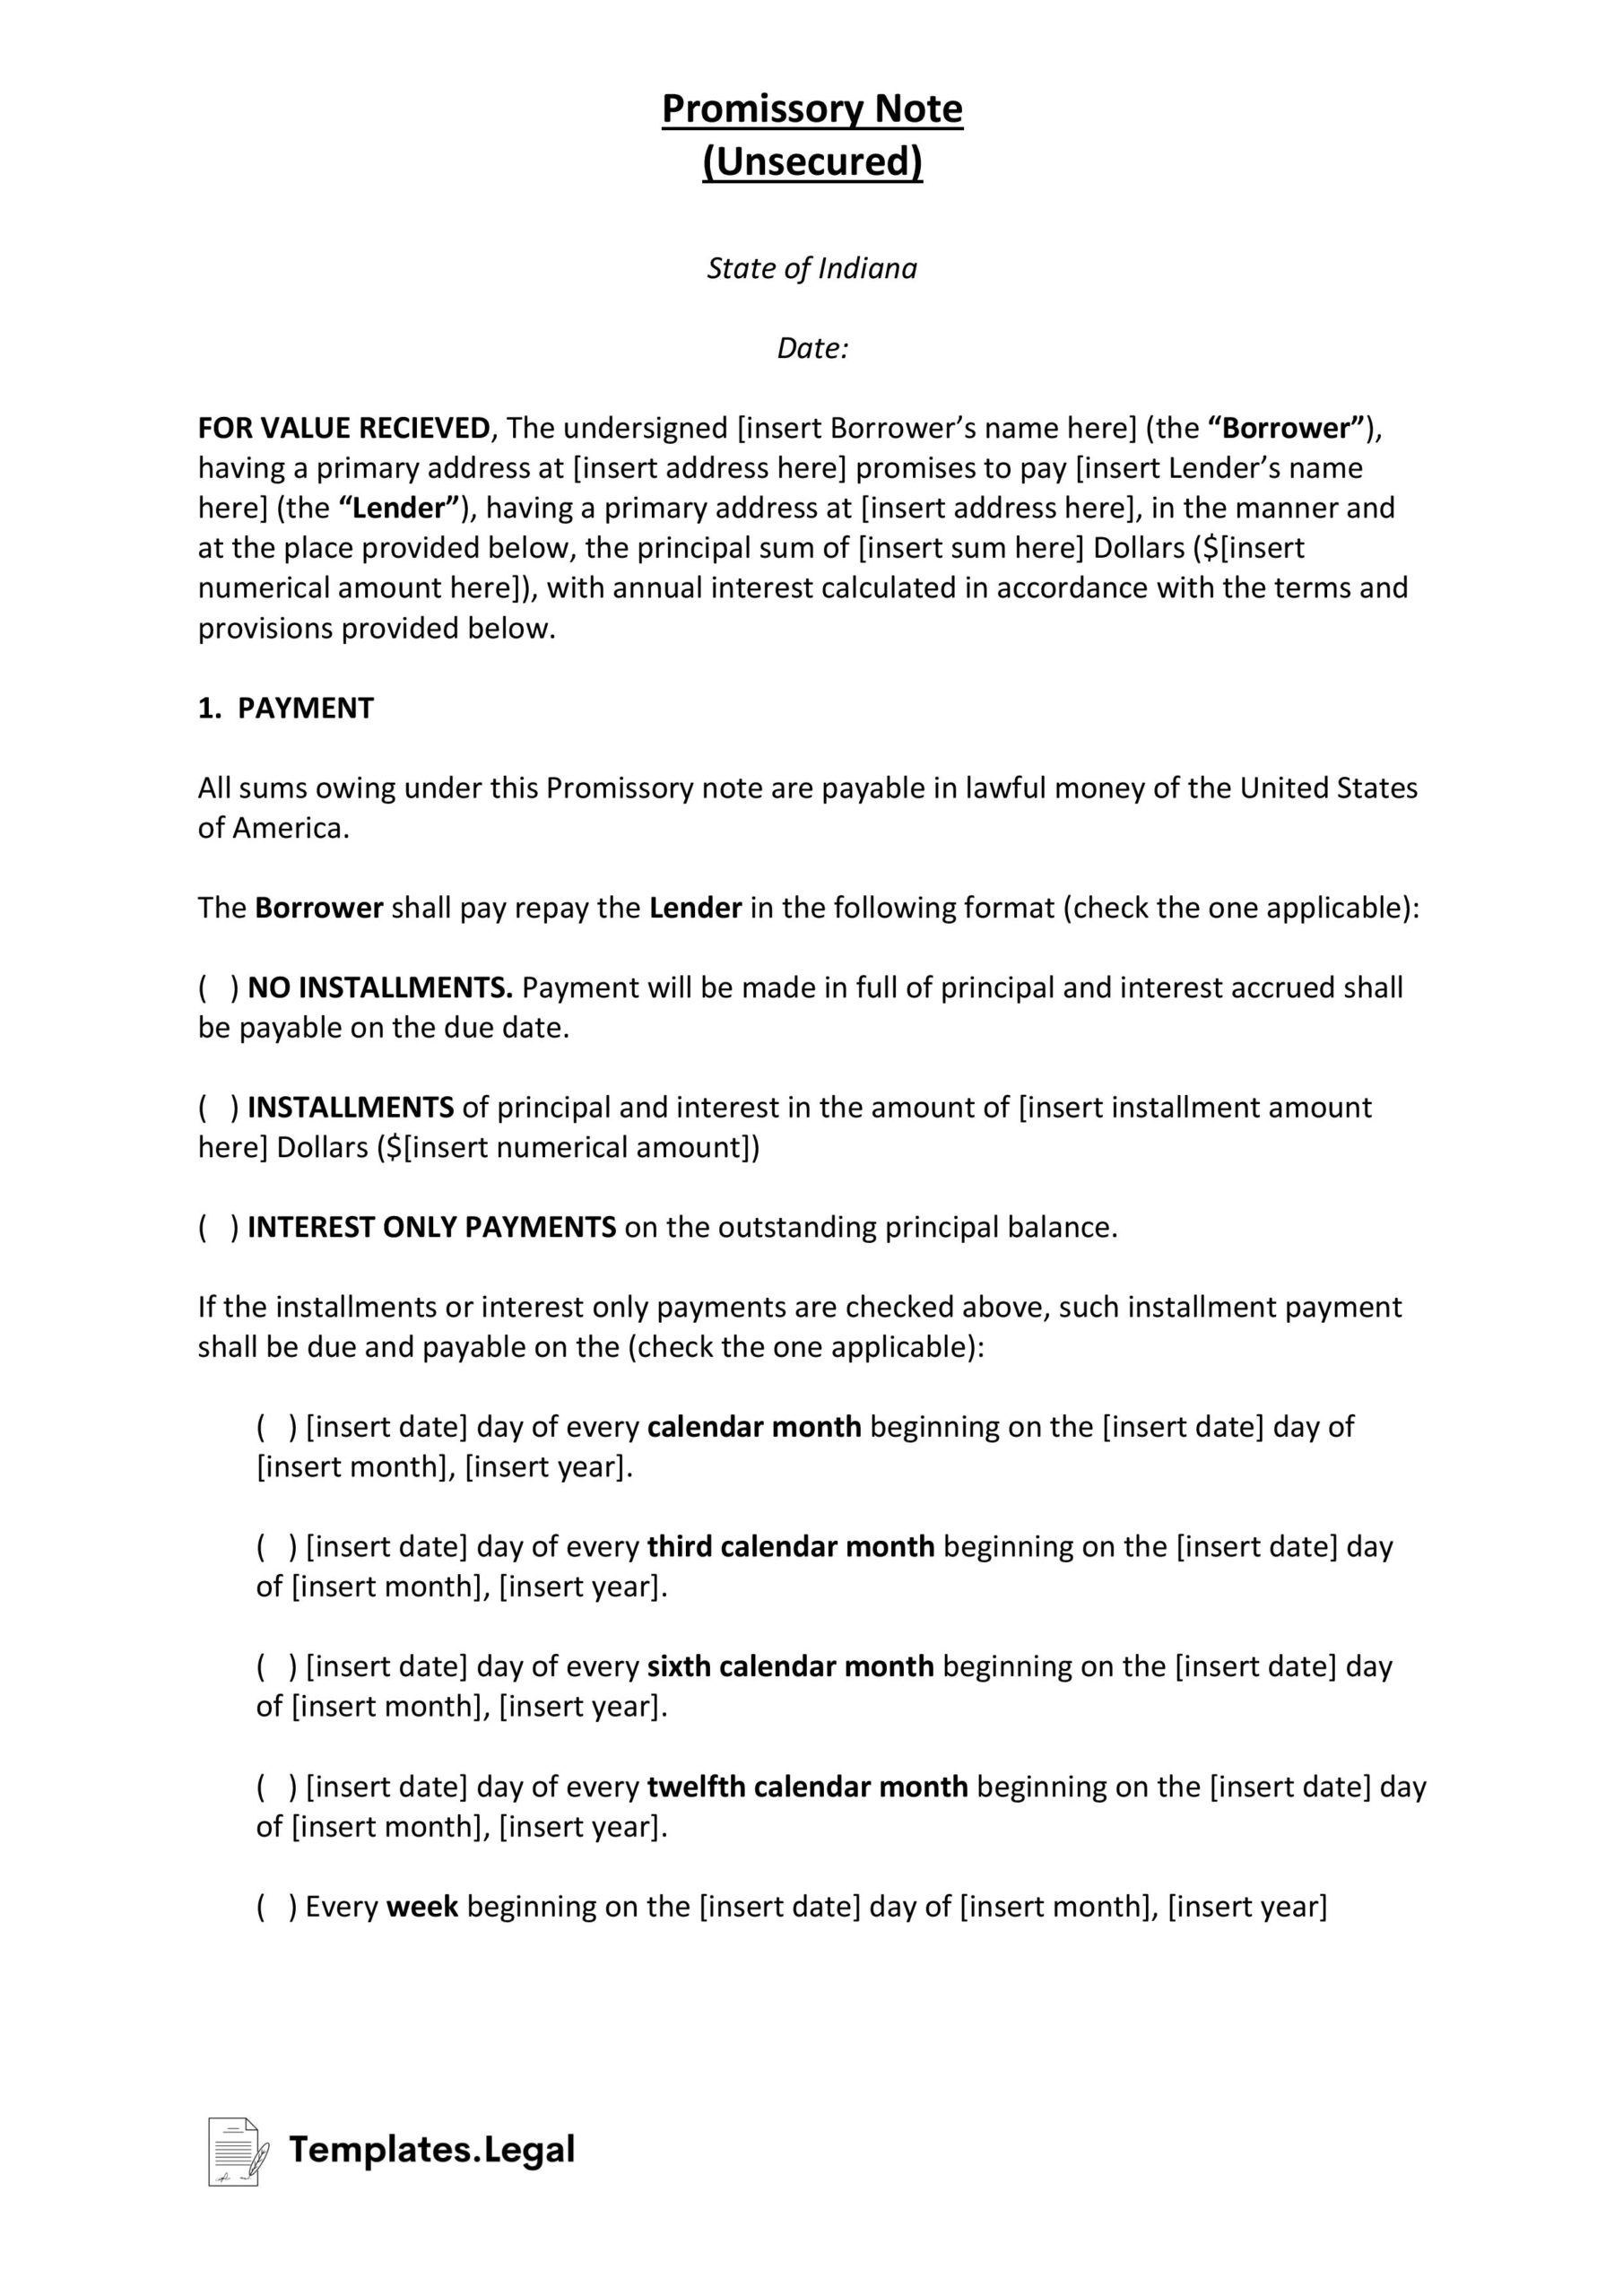 Indiana Unsecured Promissory Note - Templates.Legal